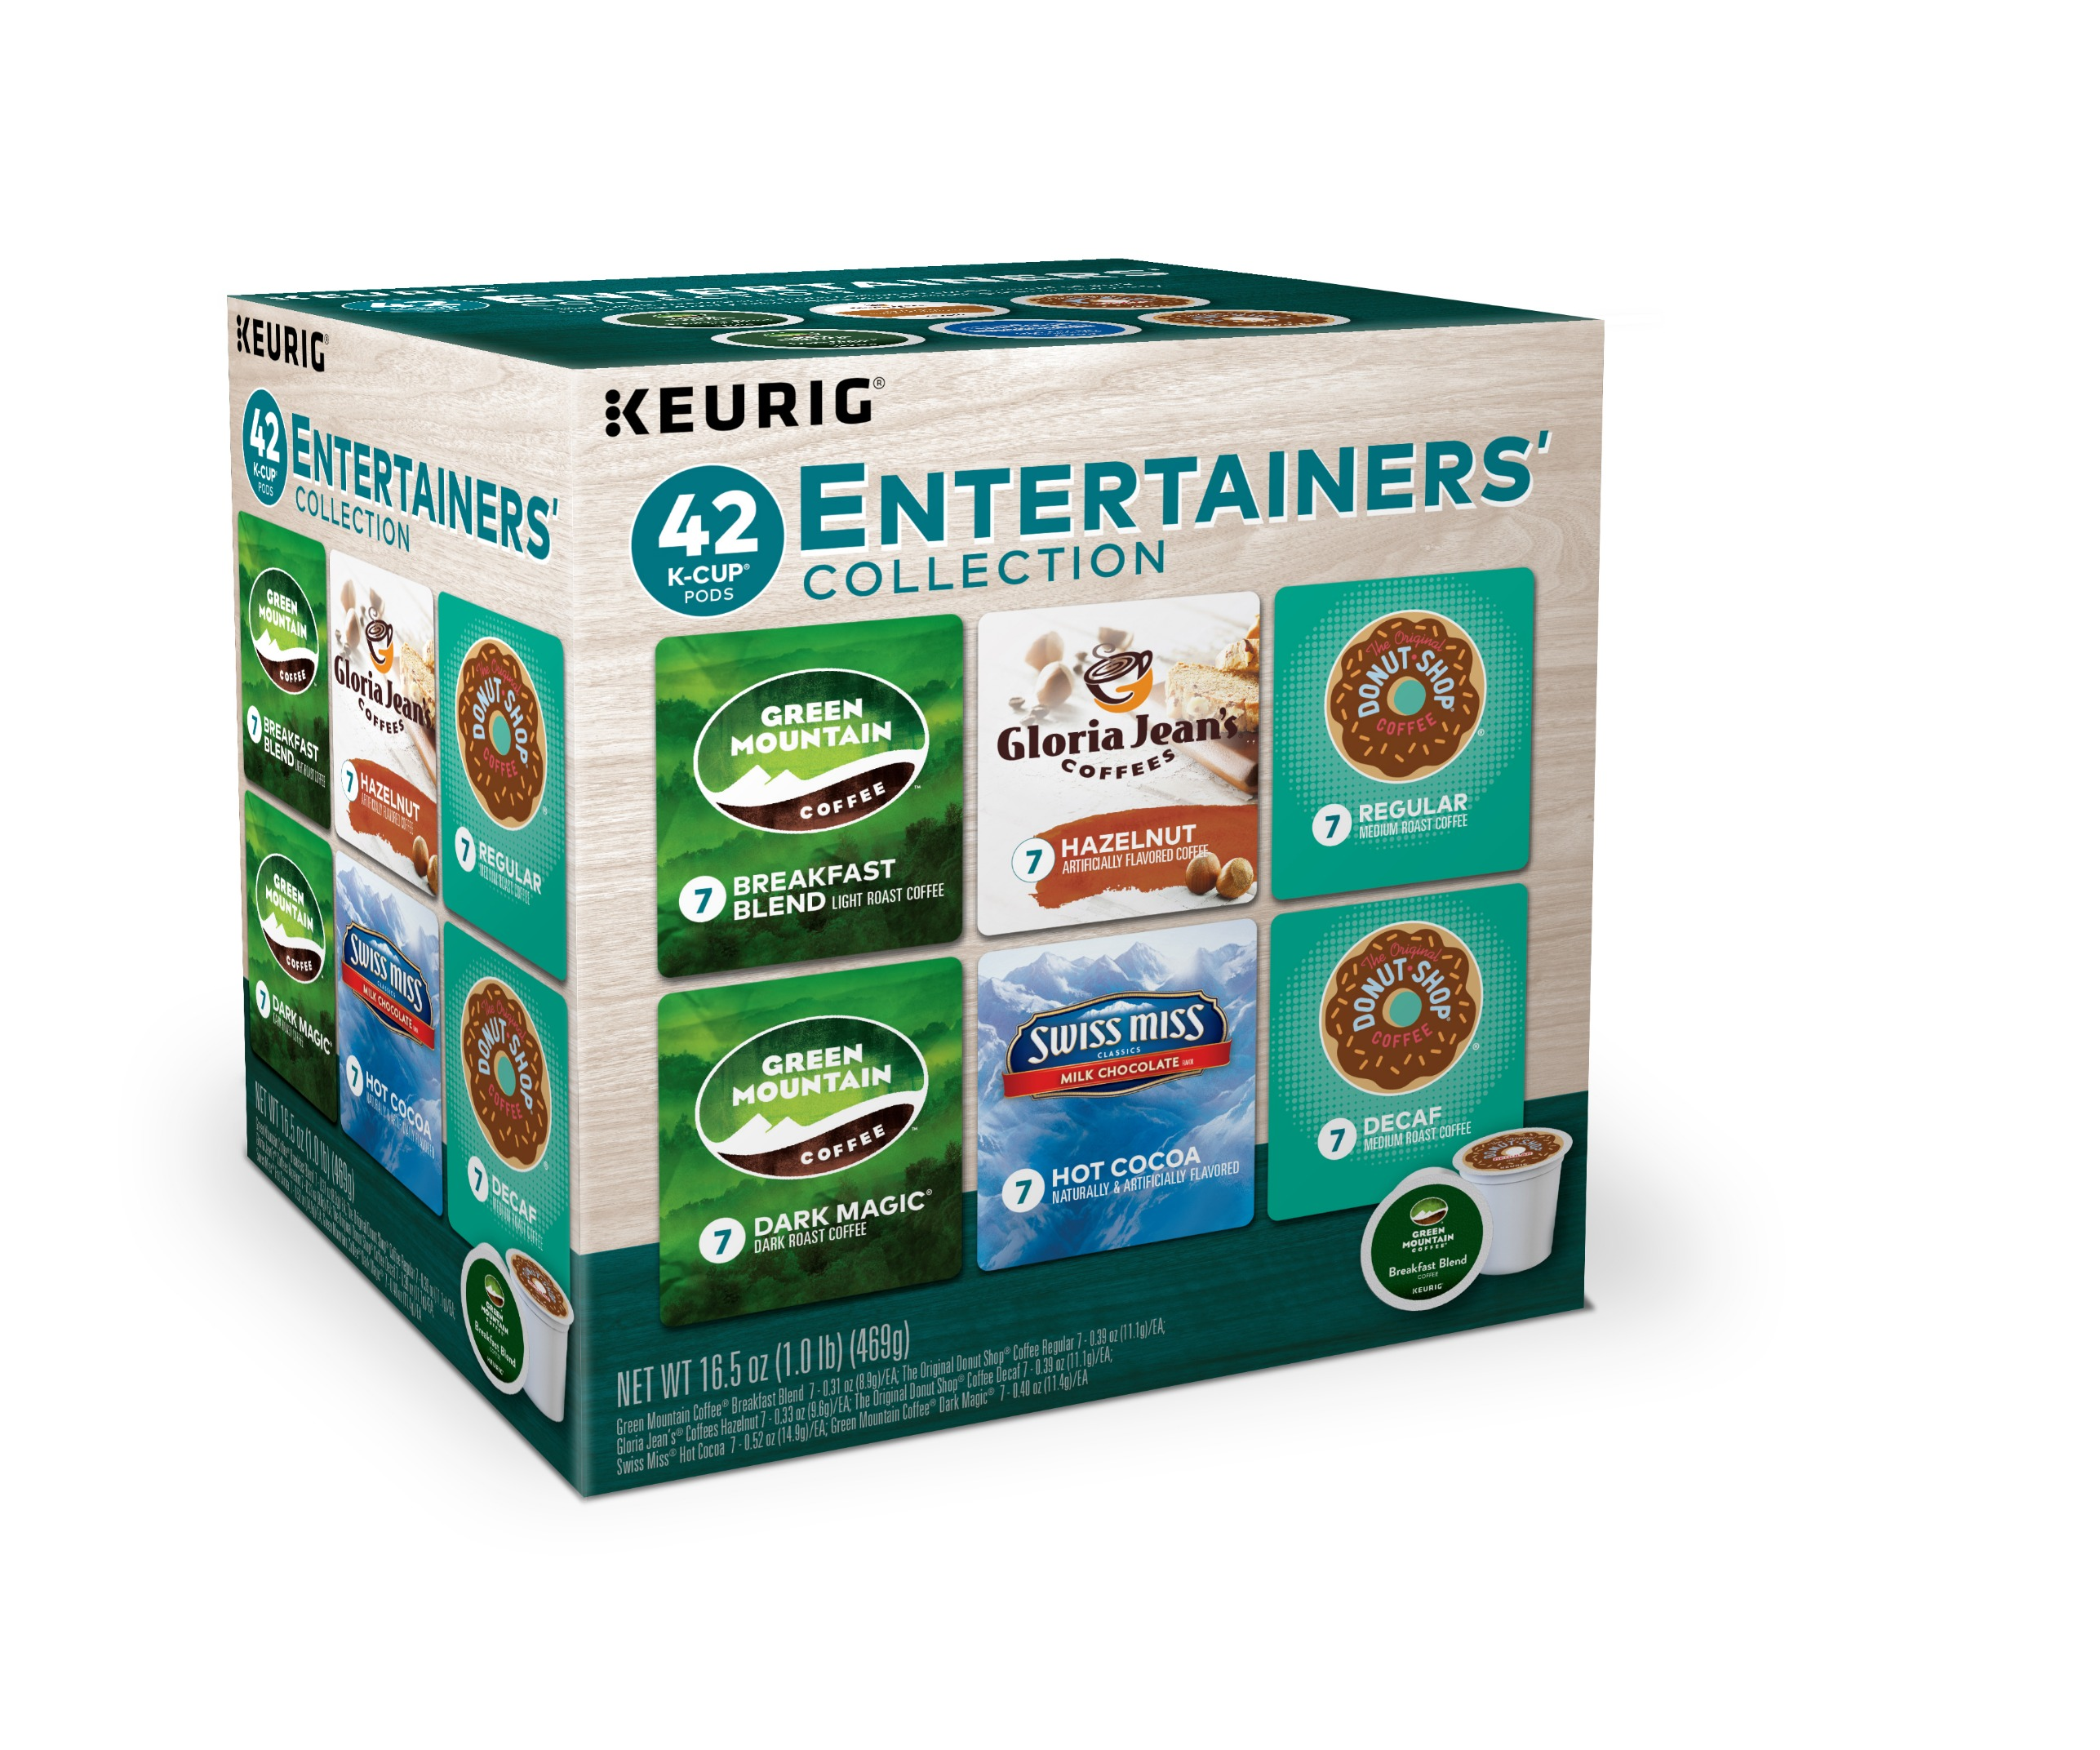 Keurig Entertainer Variety Coffee Collection K-Cup Pods, Variety Pack, 42 Count for Keurig Brewers